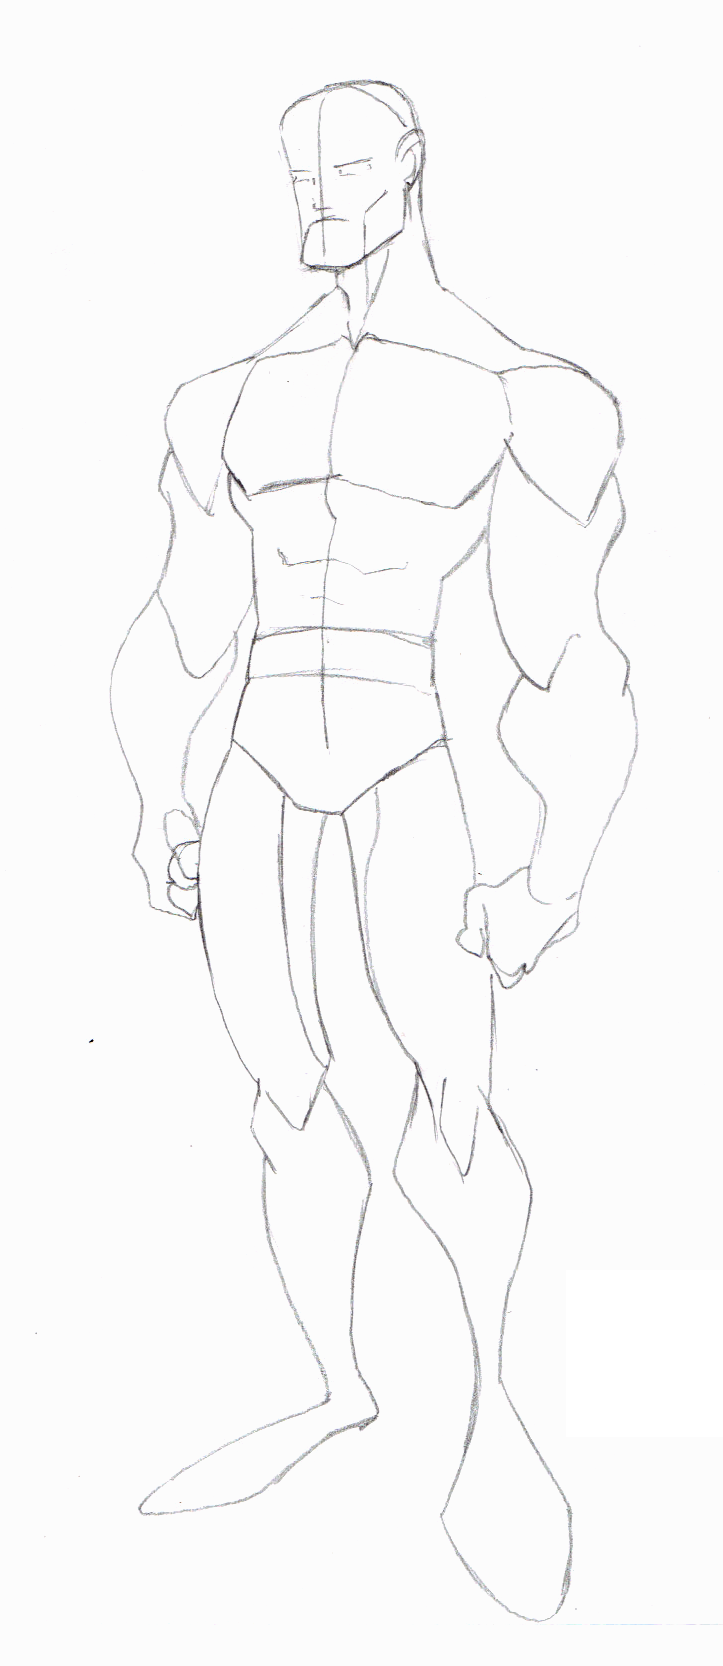 Animated Male Body Sketch 1 by ~skywarp-2 on deviantART        ★ || CHARACTER DESIGN REFERENCES (https://www.facebook.com/CharacterDesignReferences & https://www.pinterest.com/characterdesigh) • Love Character Design? Join the Character Design Challenge (link→ https://www.facebook.com/groups/CharacterDesignChallenge) Share your unique vision of a theme, promote your art in a community of over 25.000 artists! || ★